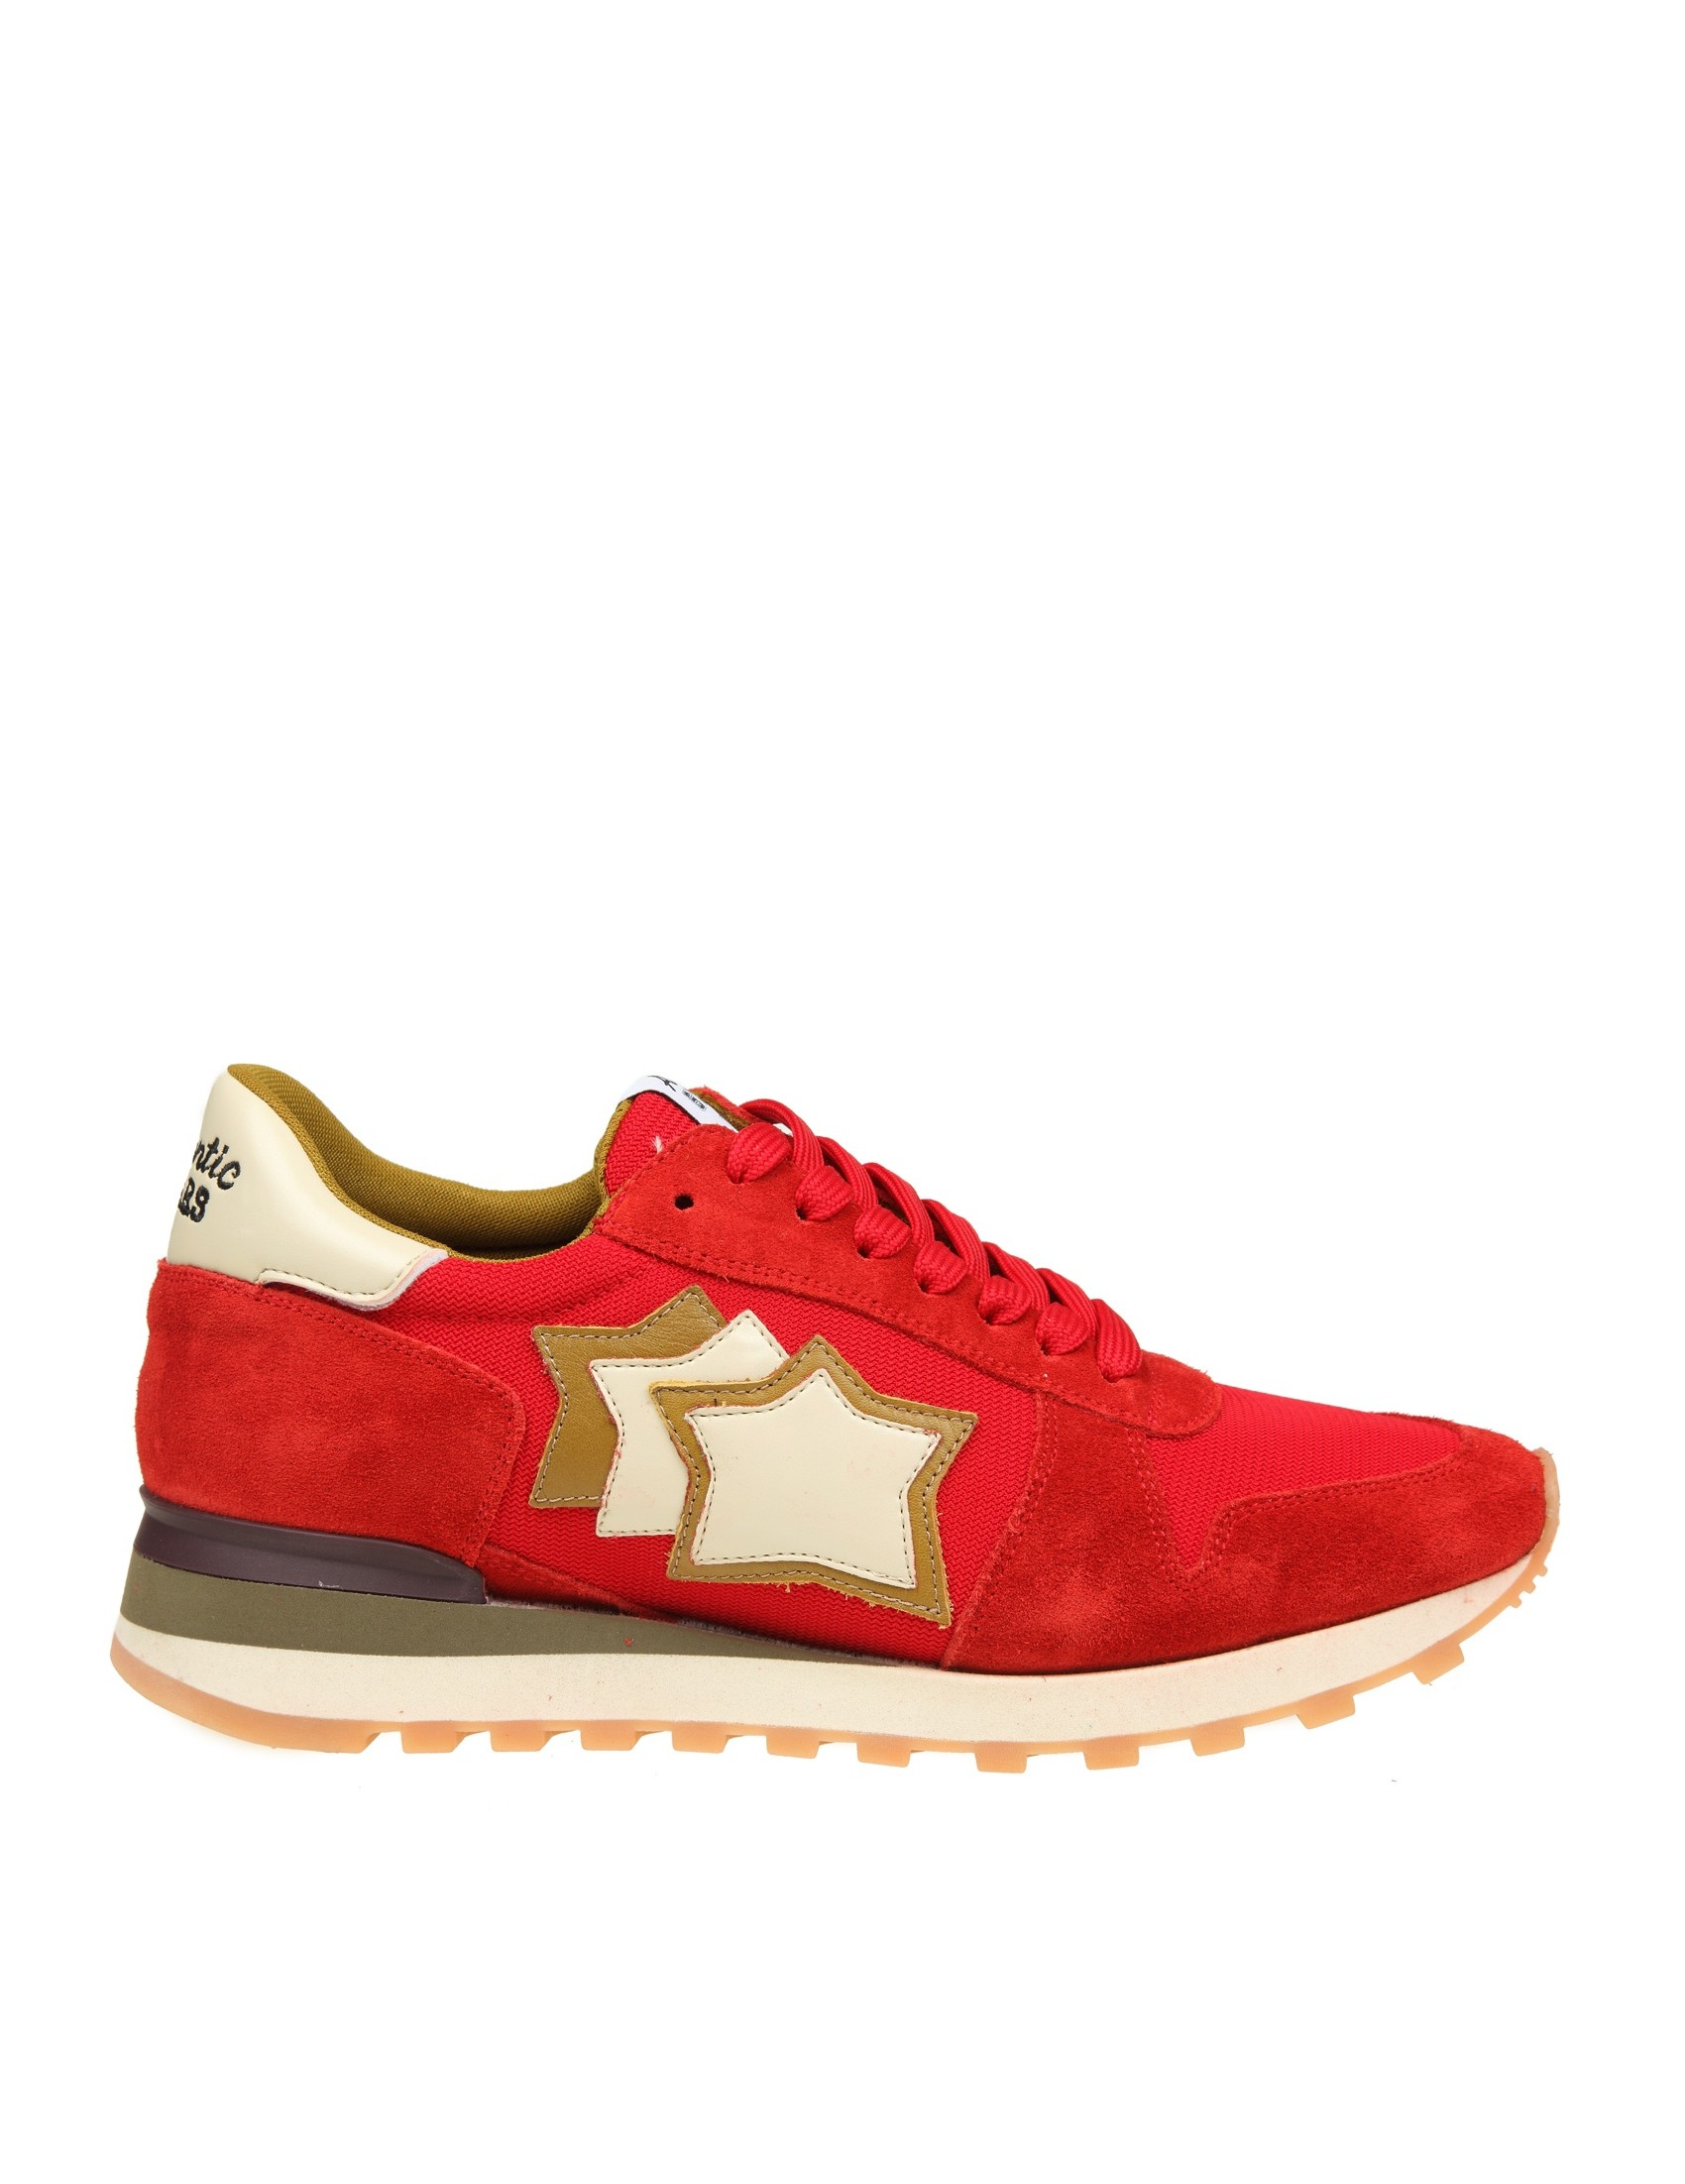 Argo sneakers - Red Atlantic Stars 8vXifV